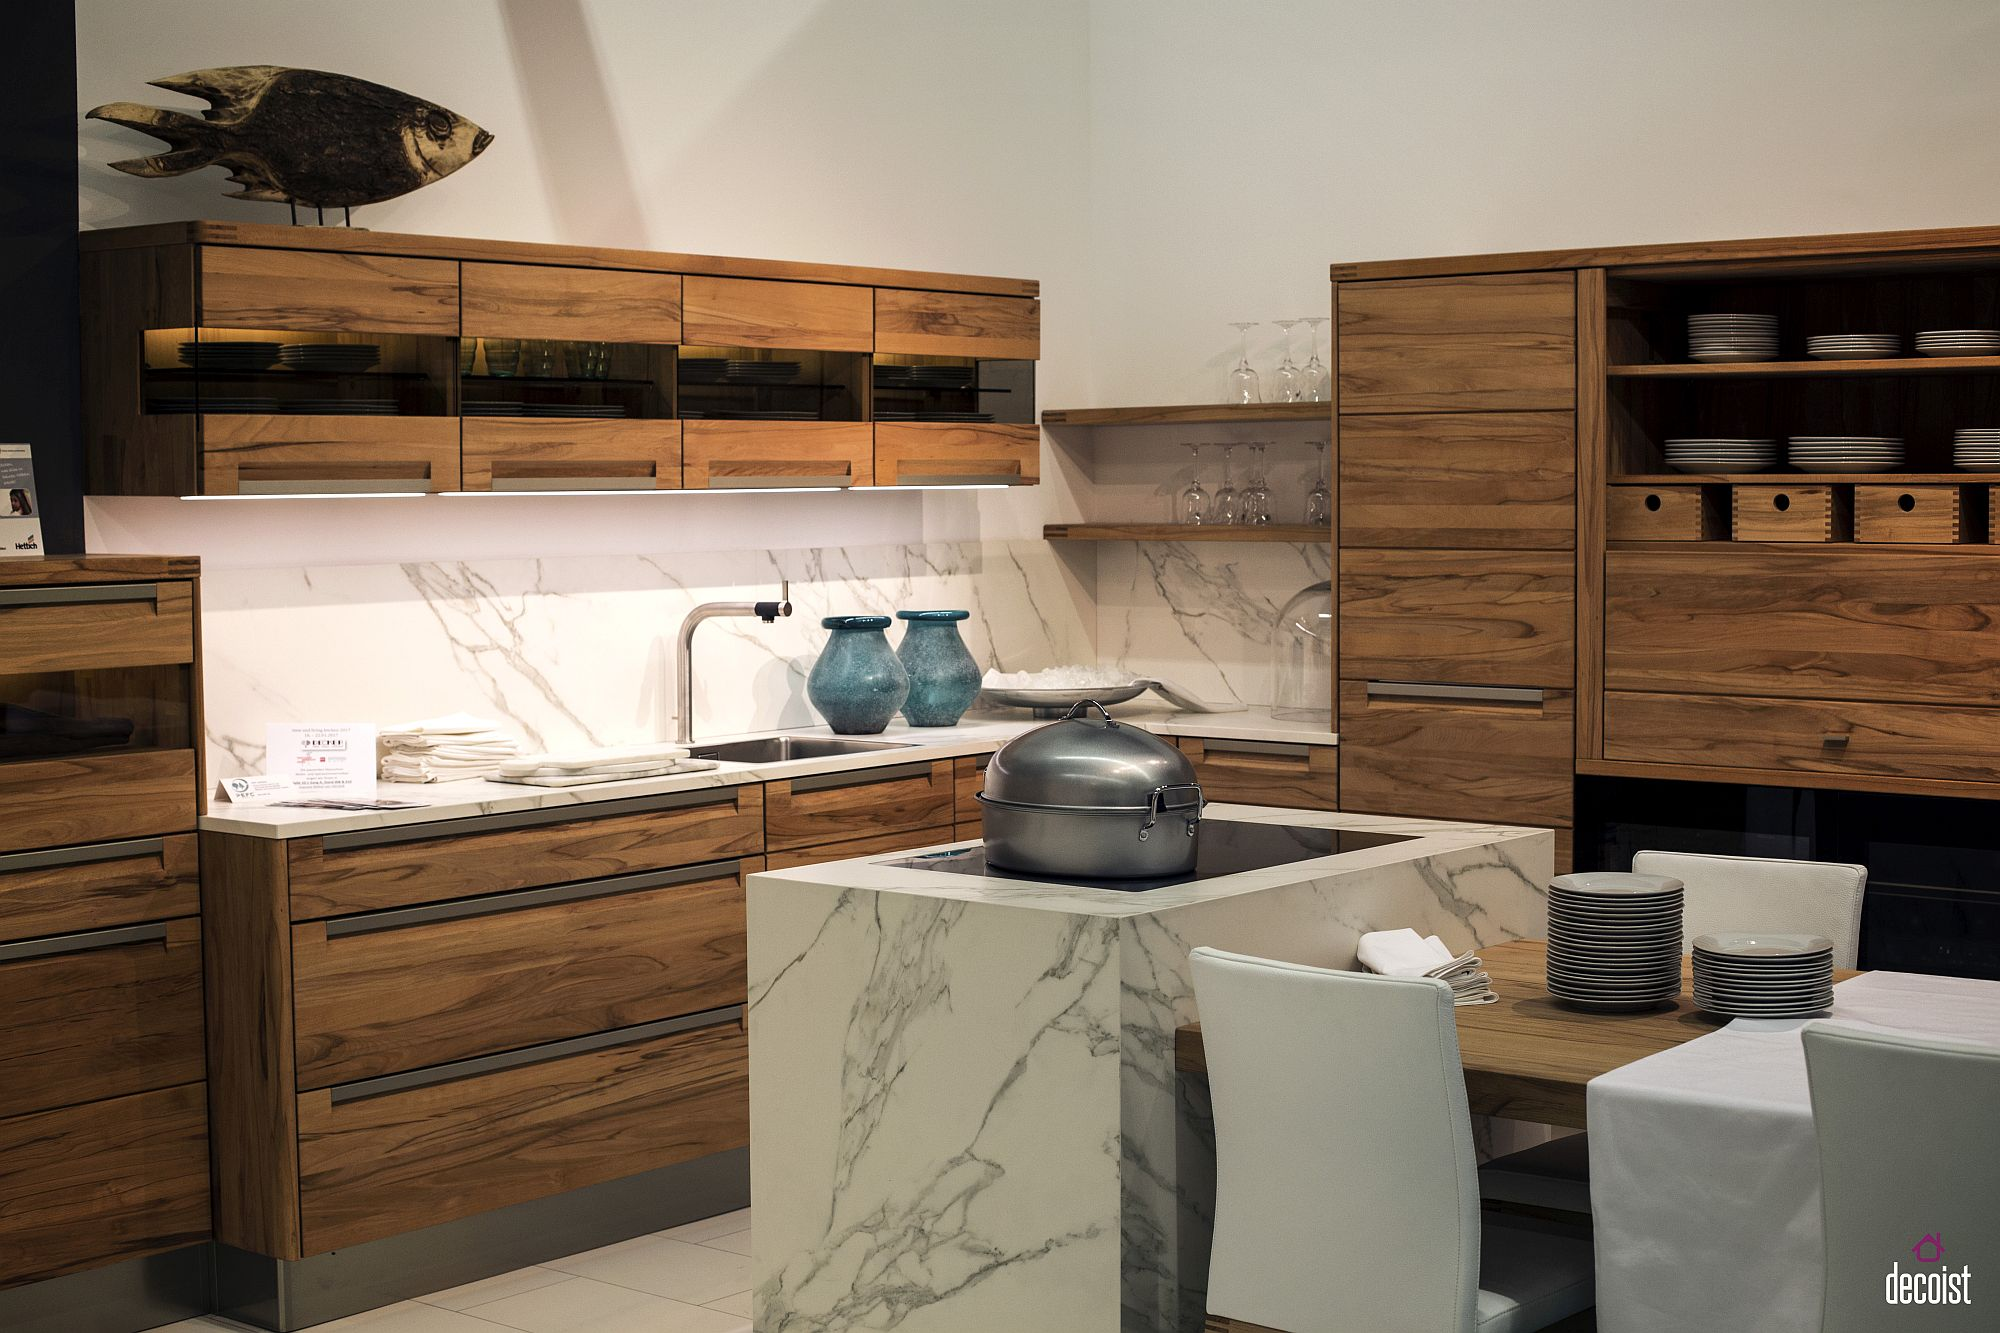 Exquisite contemporary kitchen in marble and wood from Decker